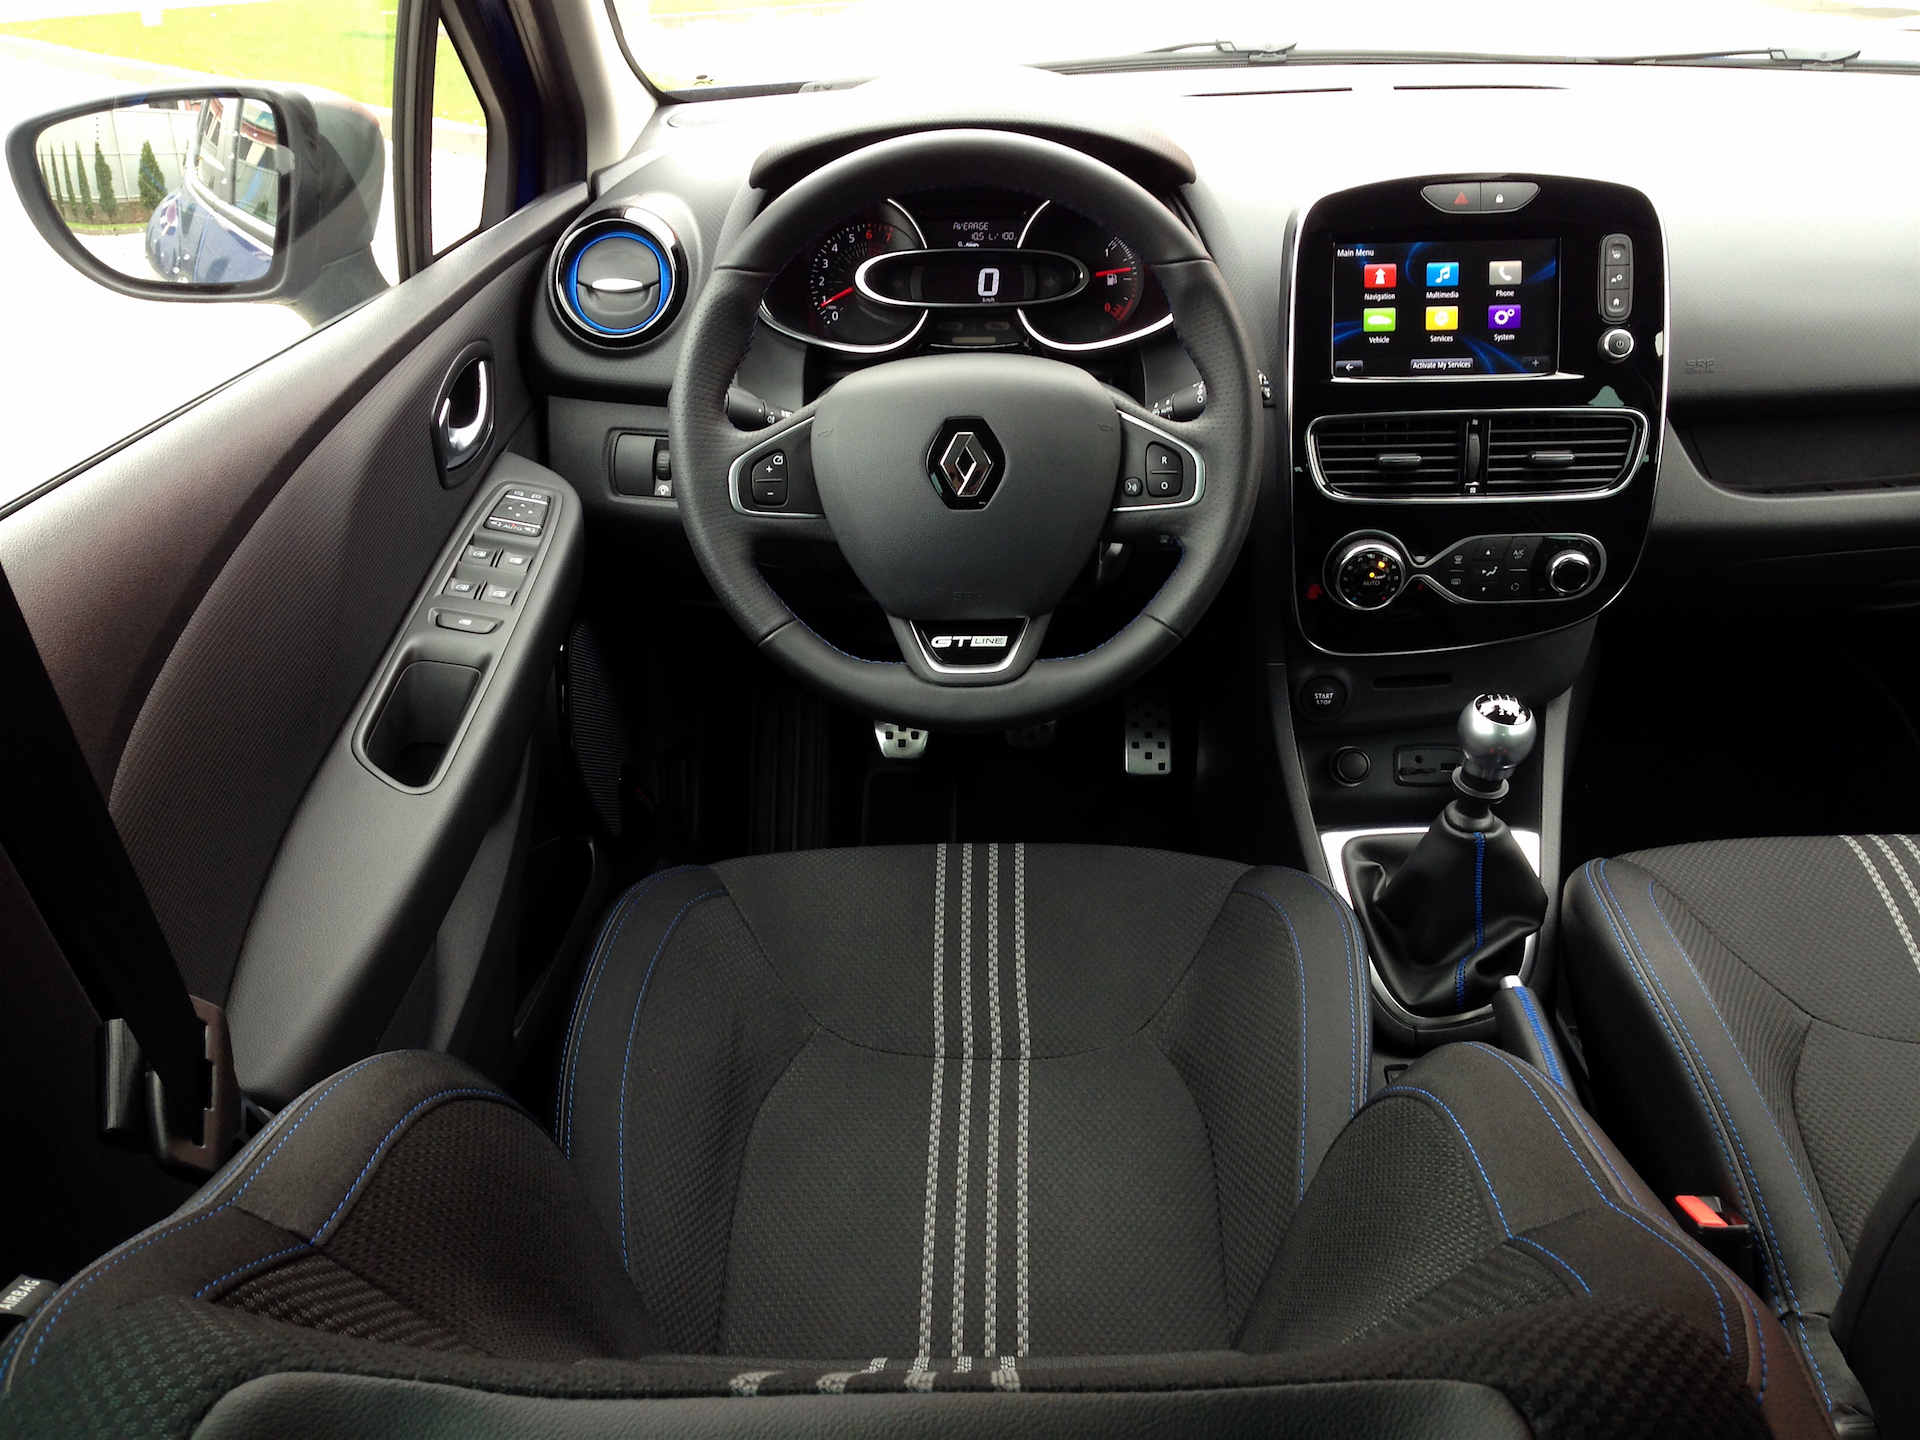 renault clio gt line 120 edc review hands on expert reviews best car review. Black Bedroom Furniture Sets. Home Design Ideas